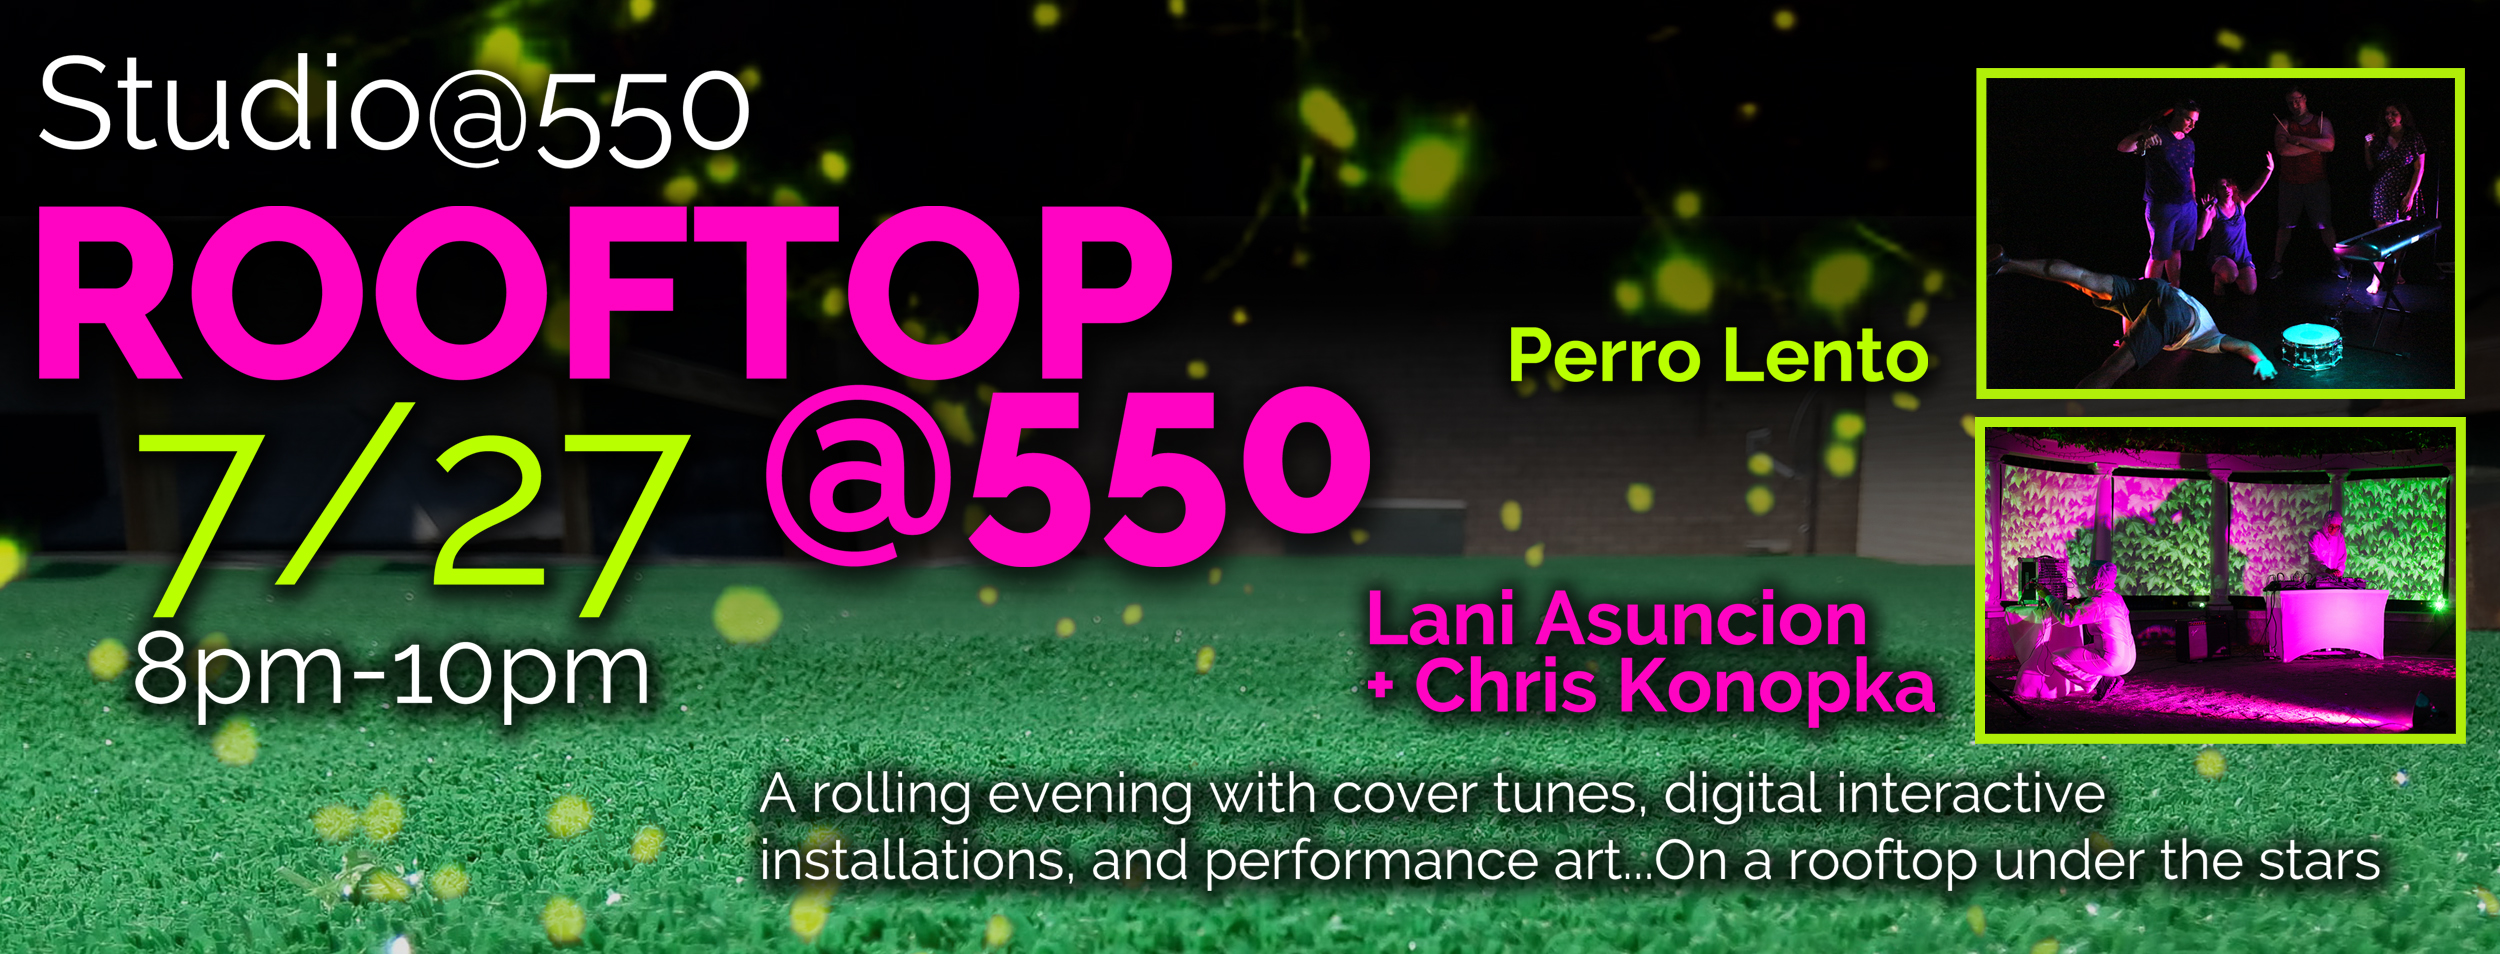 Rooftop@550 featuring Perro Lento and Lani Asuncion and Christopher Konopka